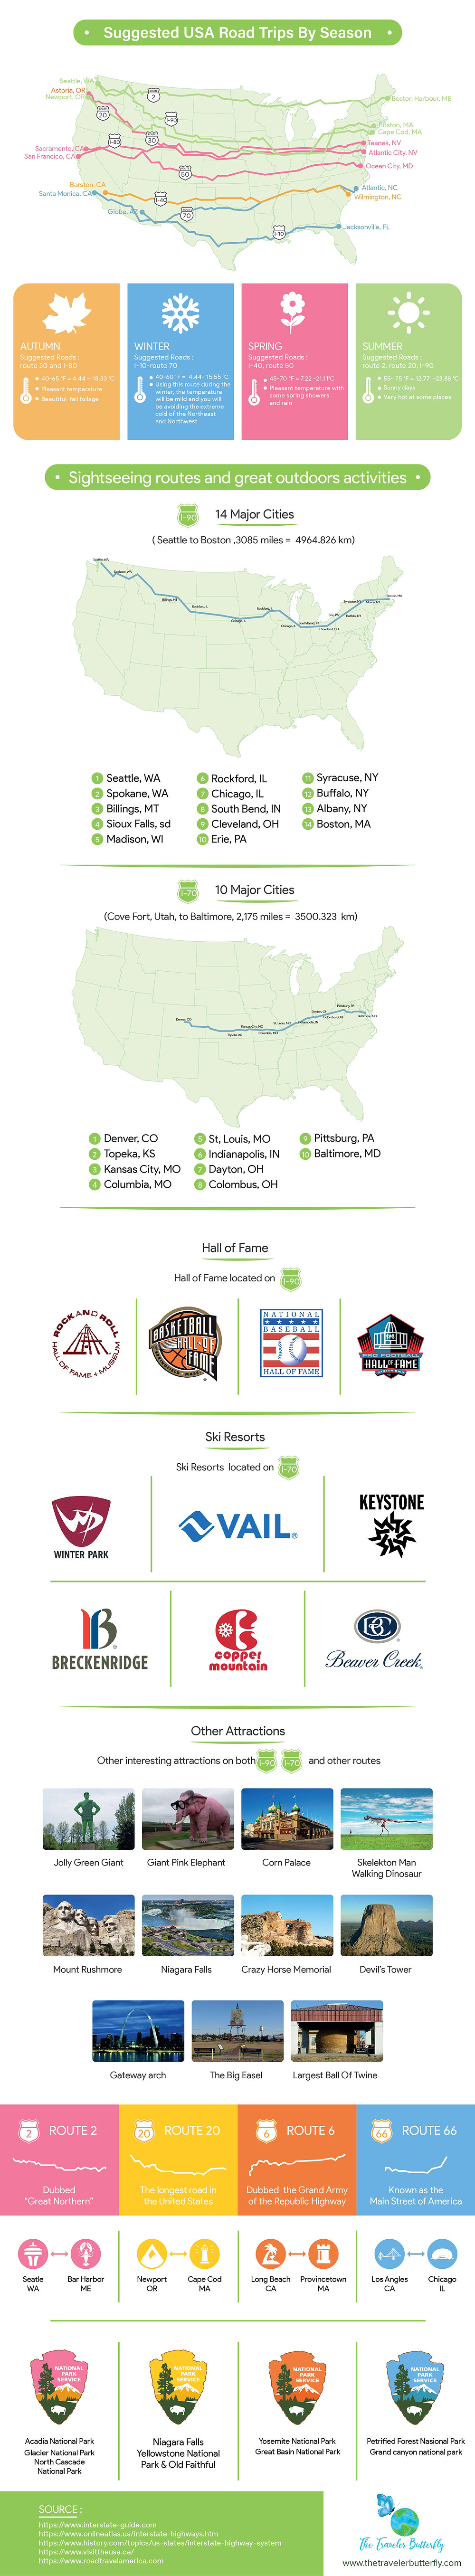 Best American Road Trip Routes Infographic Map For 2021